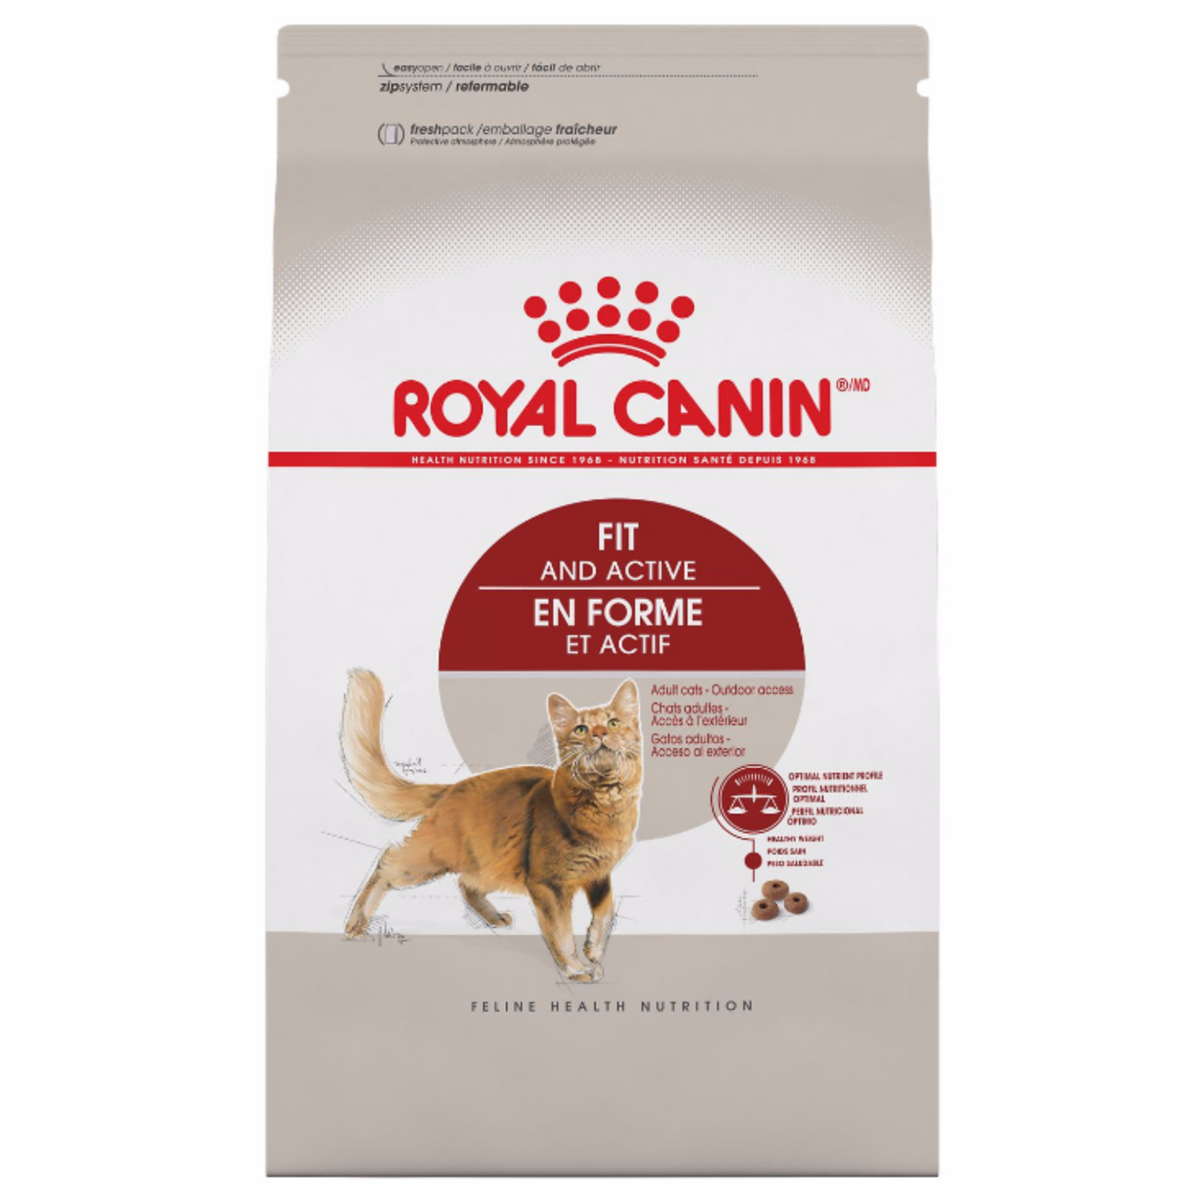 Royal Canin Fit and Active Adult Cat Food